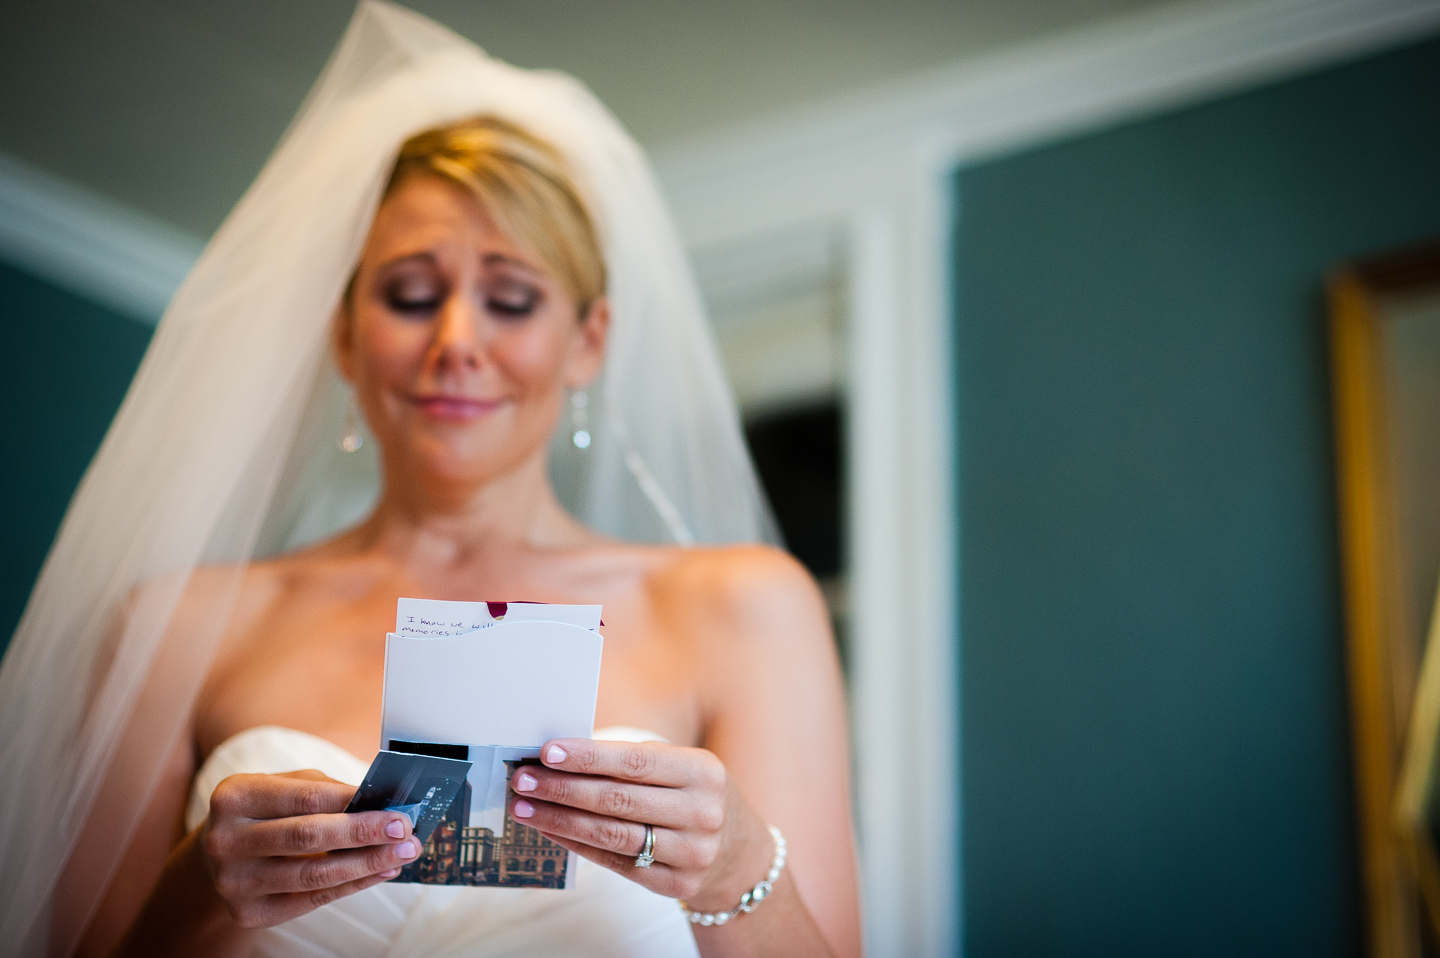 beautiful bride gets emotional as she reads the card from her soon to be husband